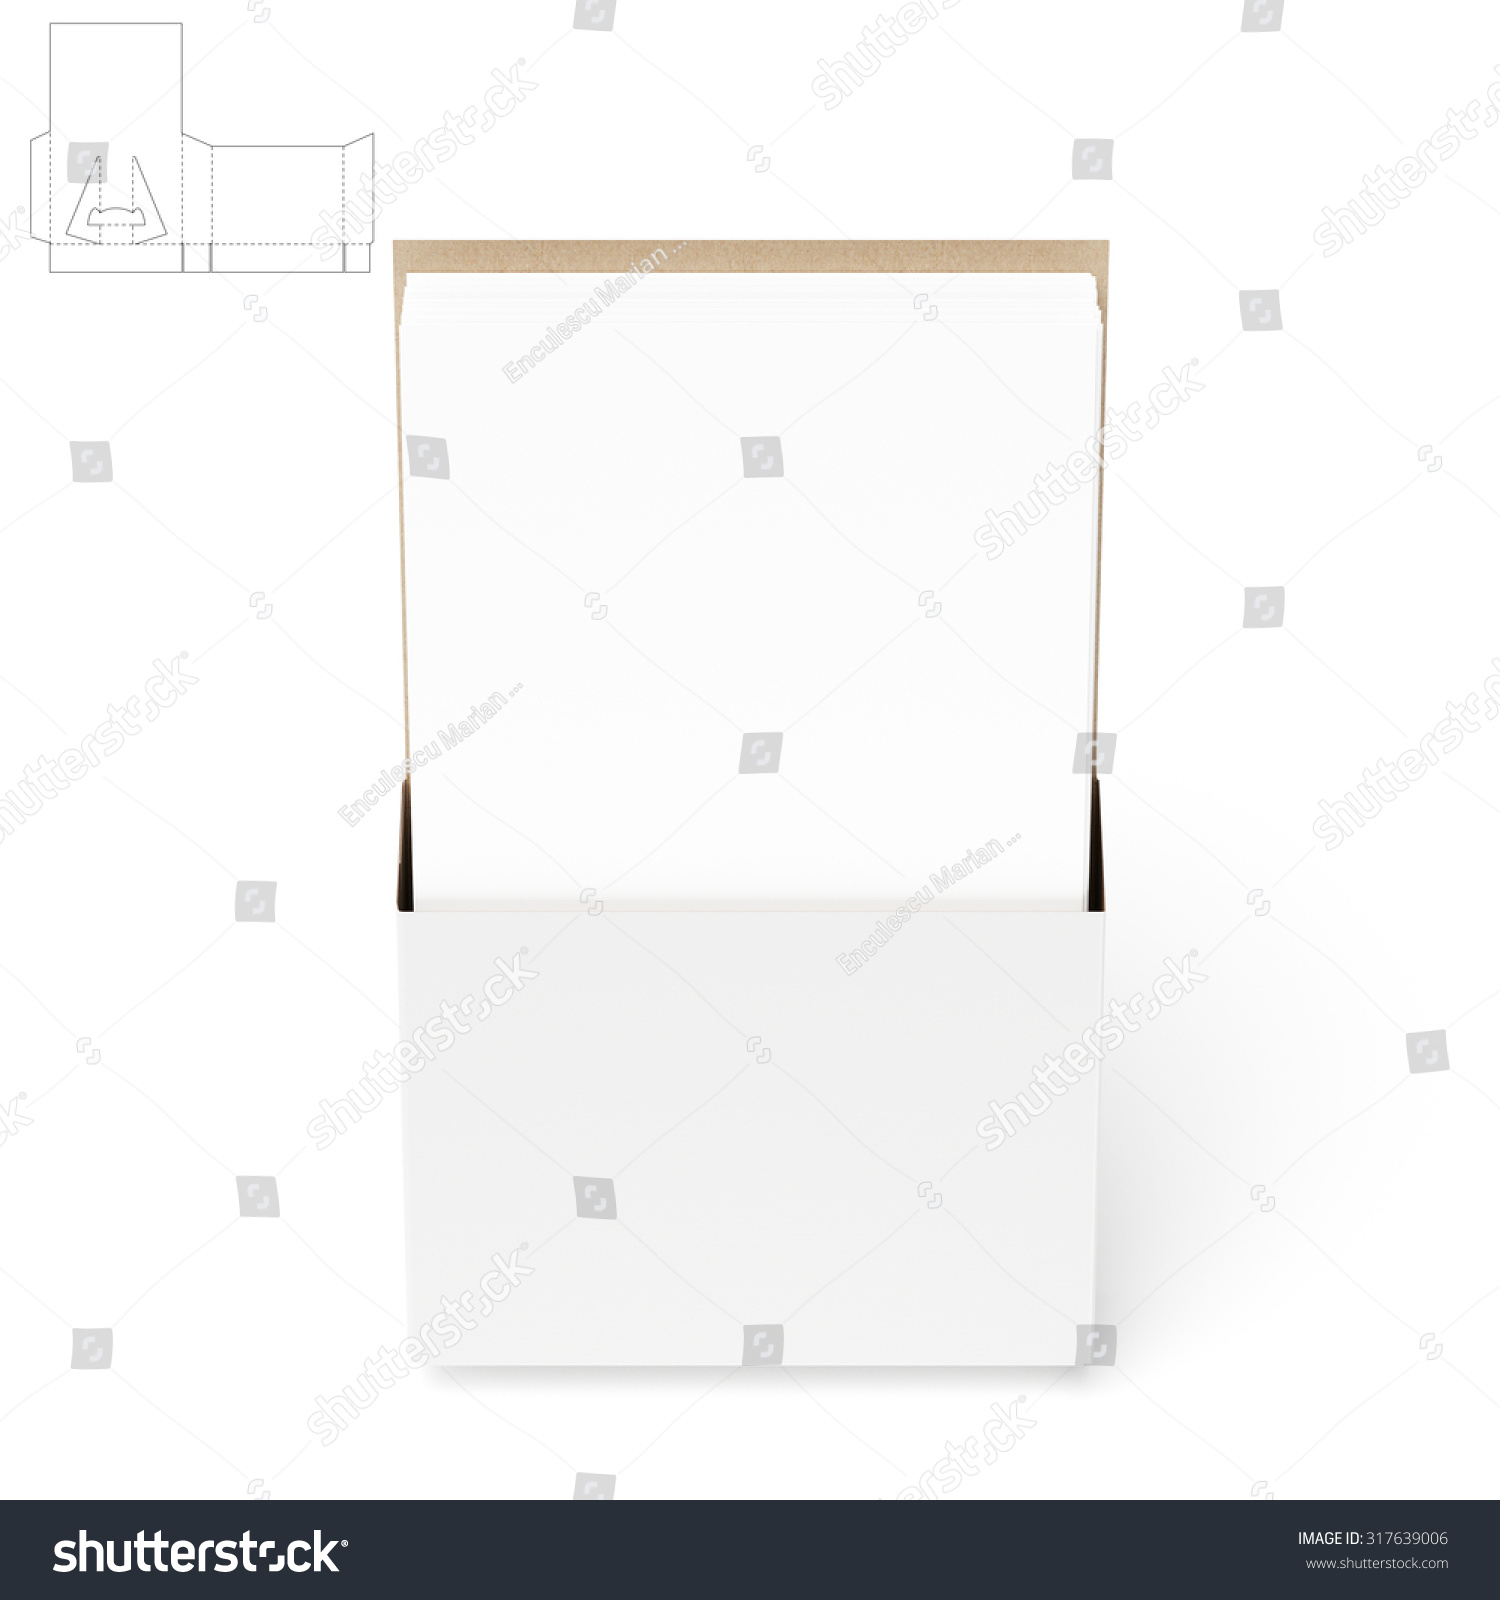 Counter Display Stand Die Cut Templates Stock Illustration 317639006 ...